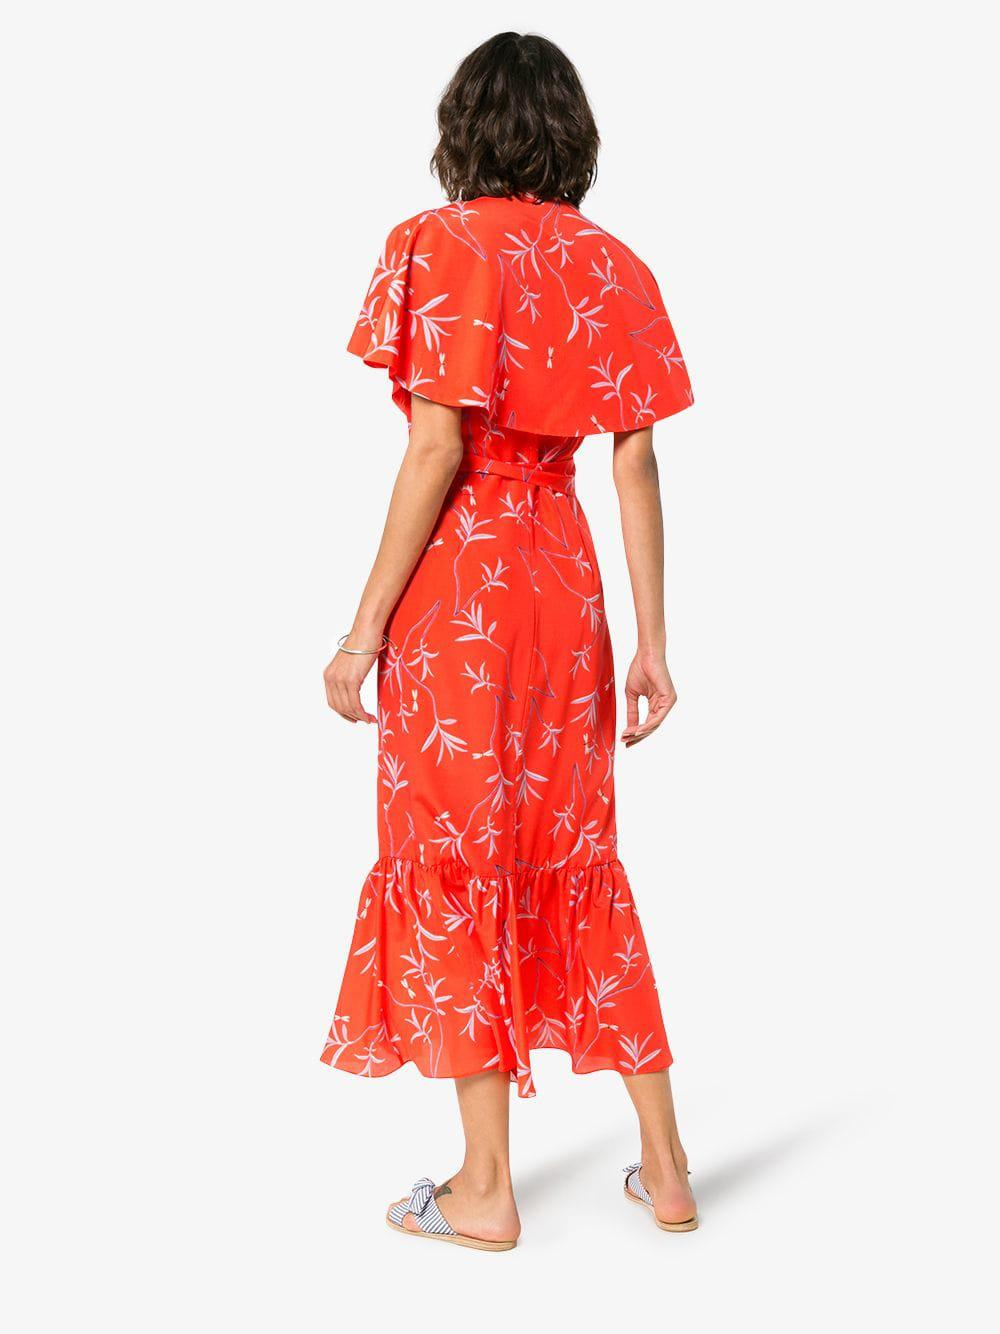 fbf7f7e8d borgo-de-nor-red-Margarita-Crepe-Floral-Print-Cape-Detail-Dress.jpeg